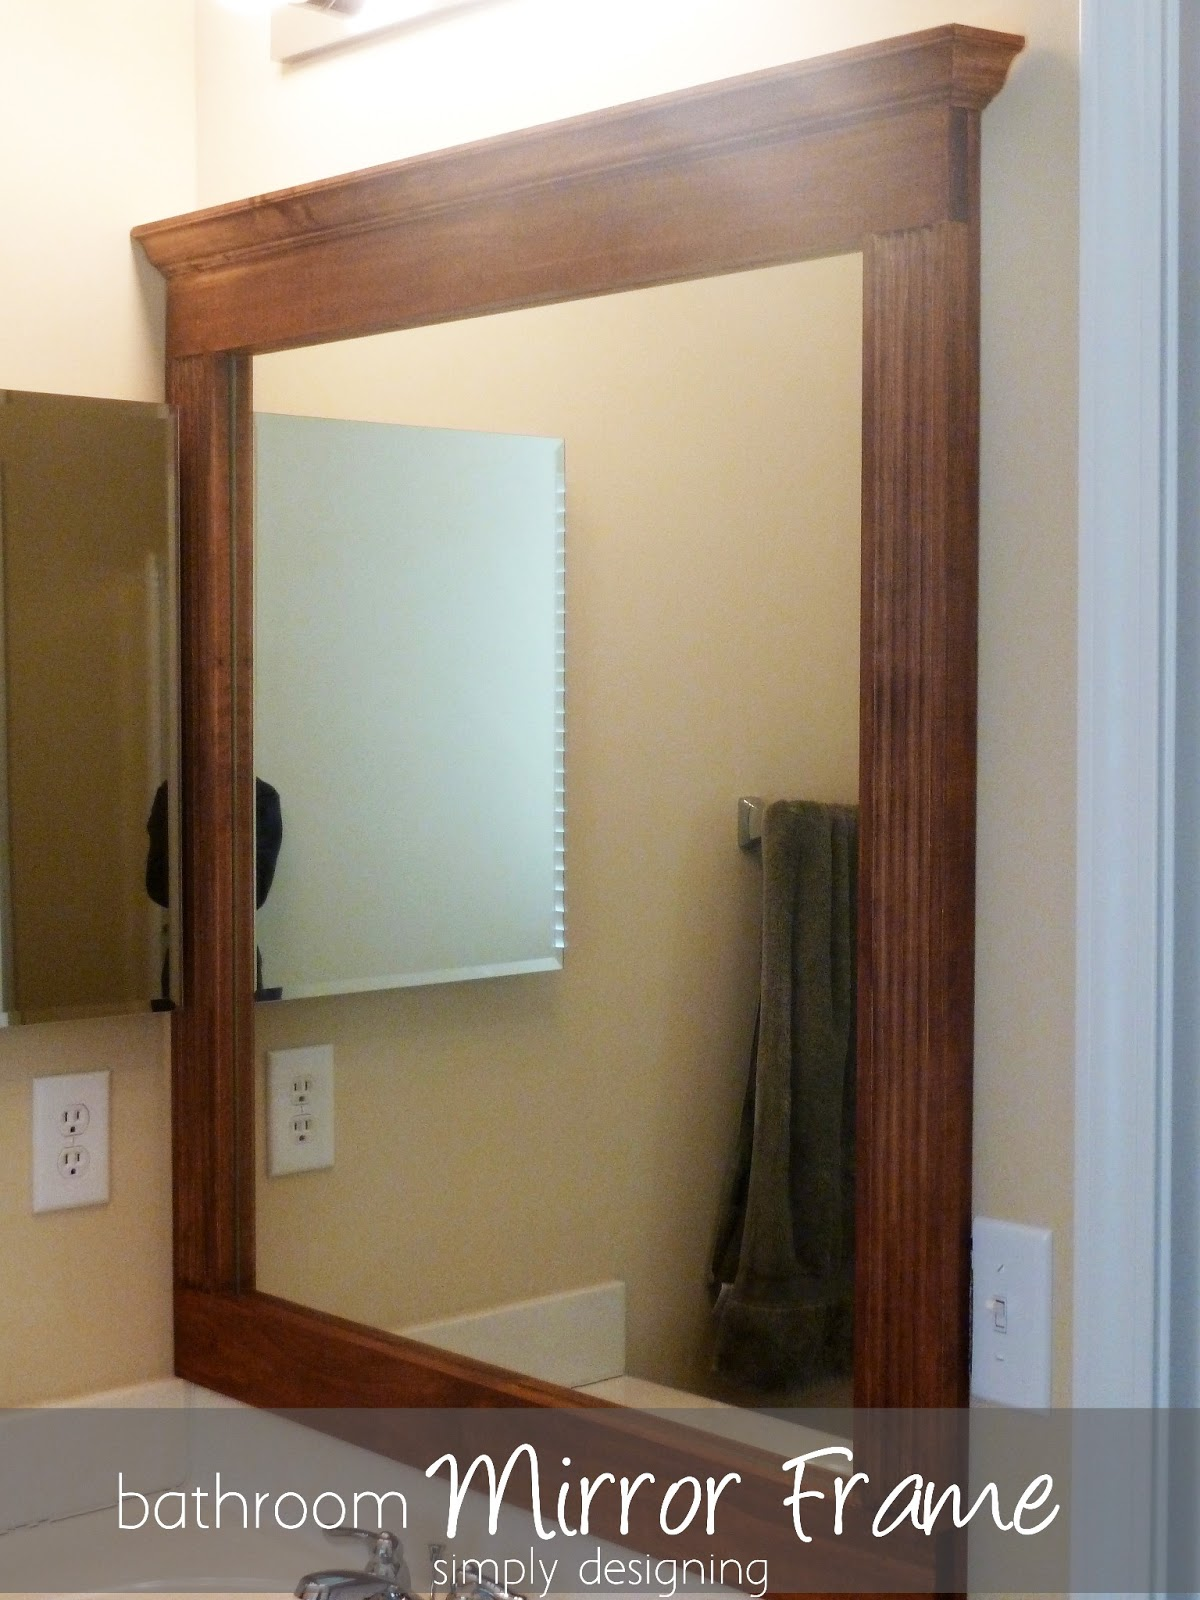 ... The Hardware Store And Inserted The Tape In Between The Mirror Frame  And The Wall. And It Worked Perfectly. The Frame Is Perfectly Flush To The  Wall And ...